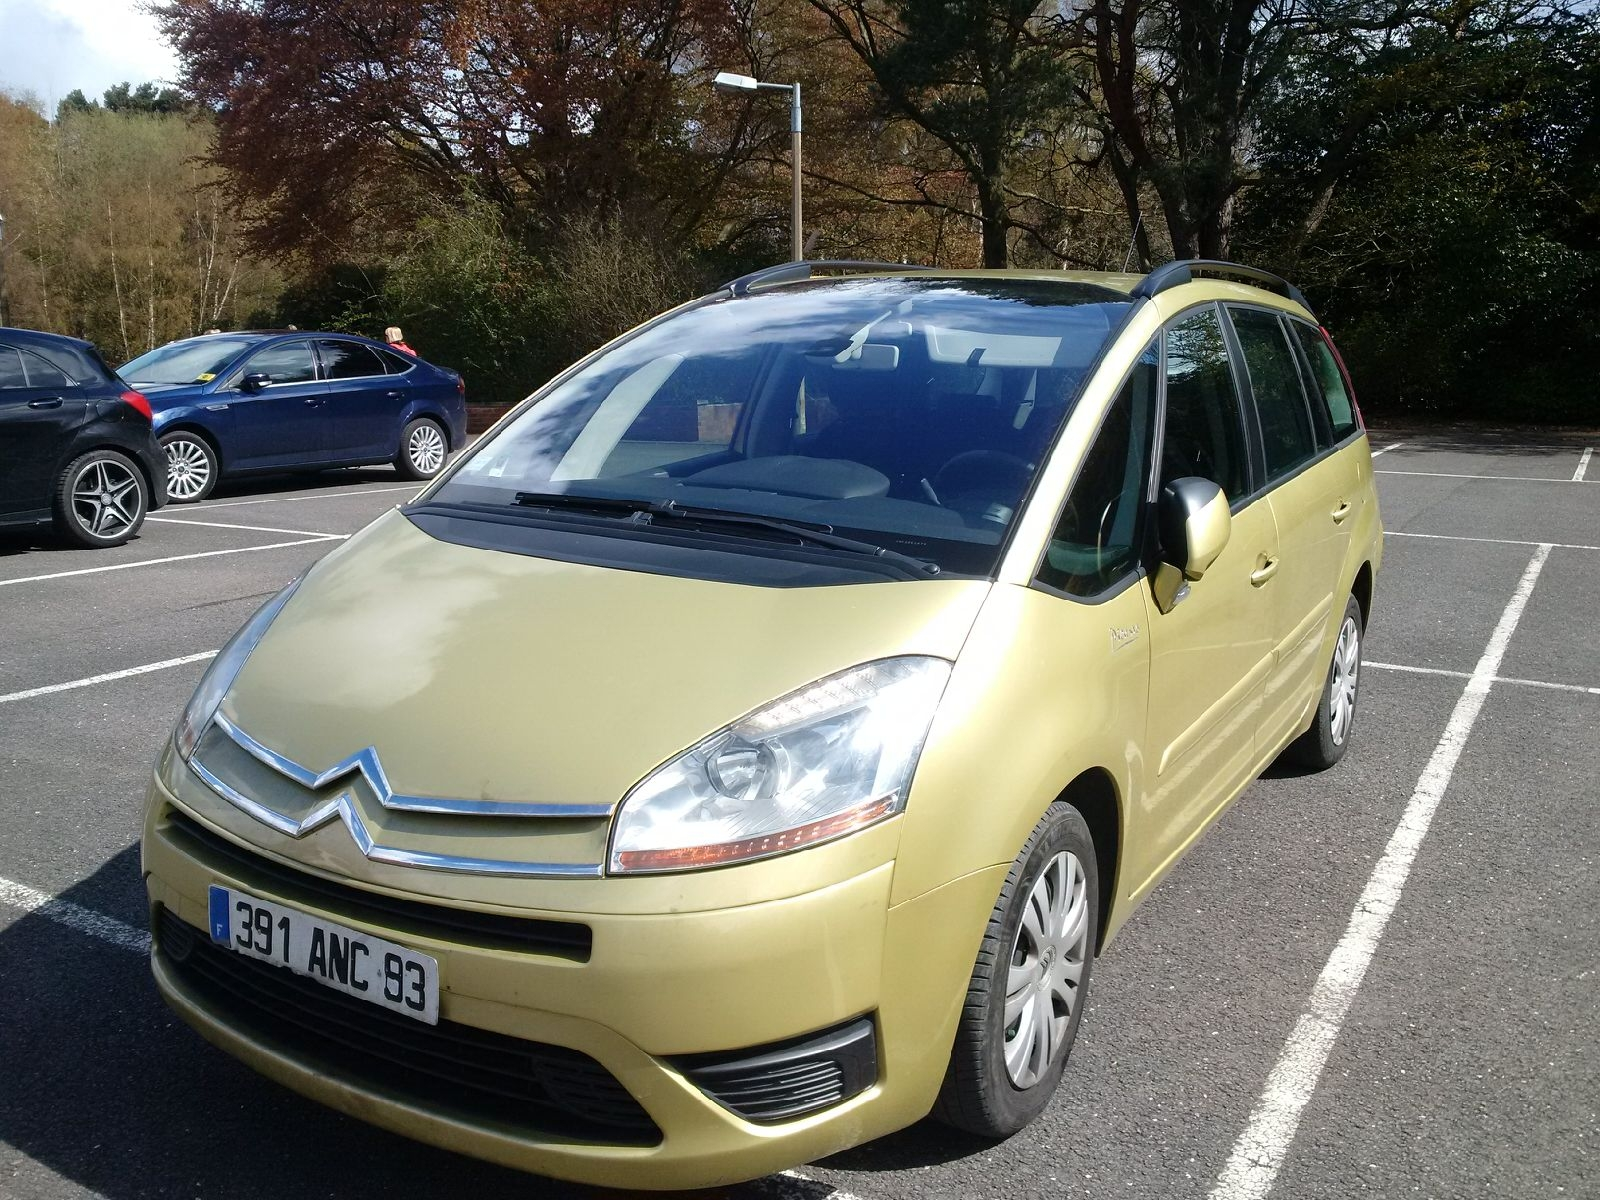 CITROEN C4 GRAND PICASSO (10/2008) - METALLIC GOLD - lieu: